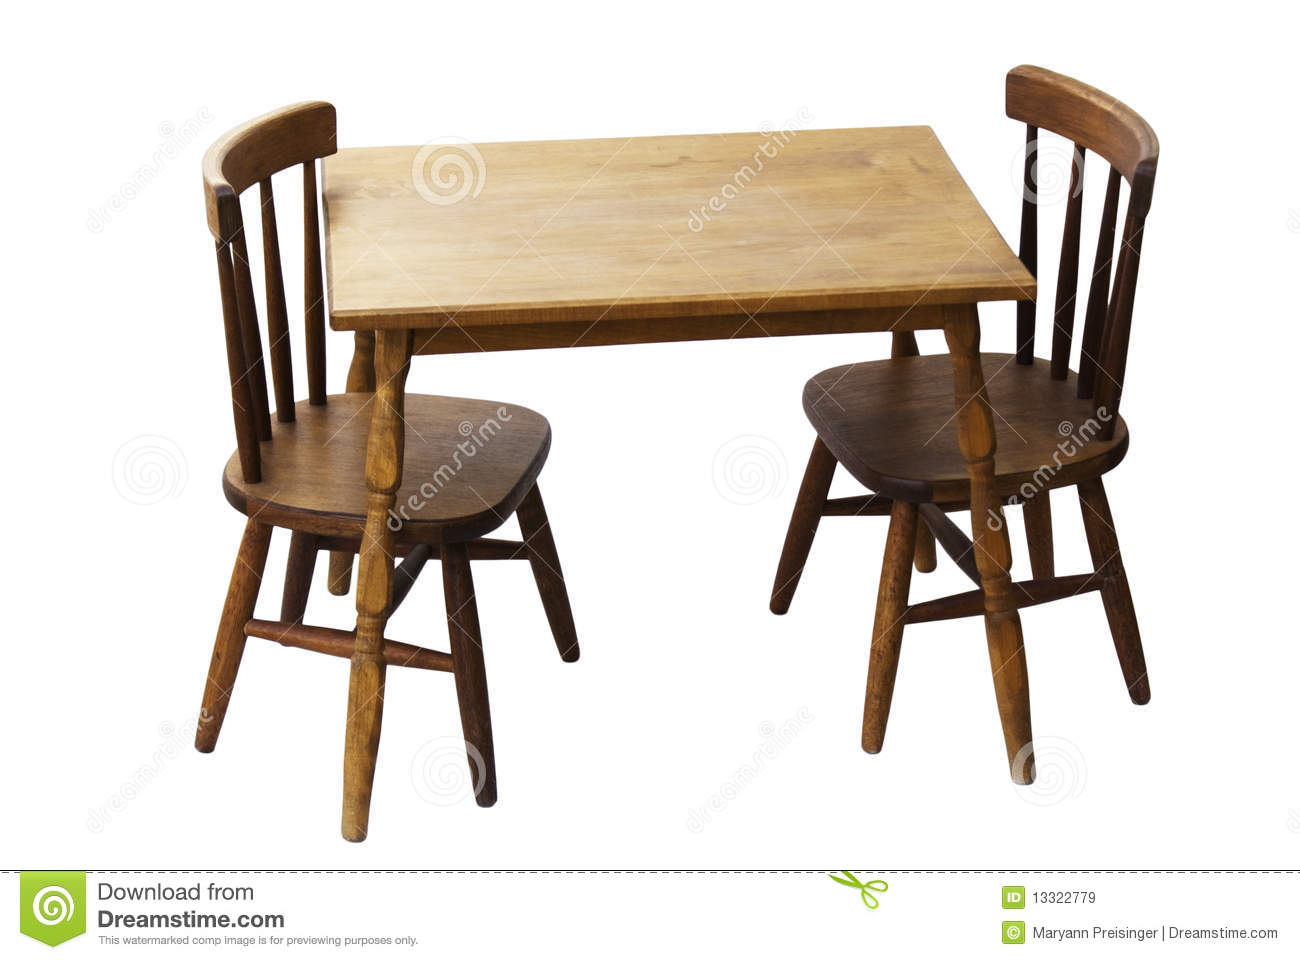 Children's Child Wood Table And Chairs Isolated Royalty Free Stock ...